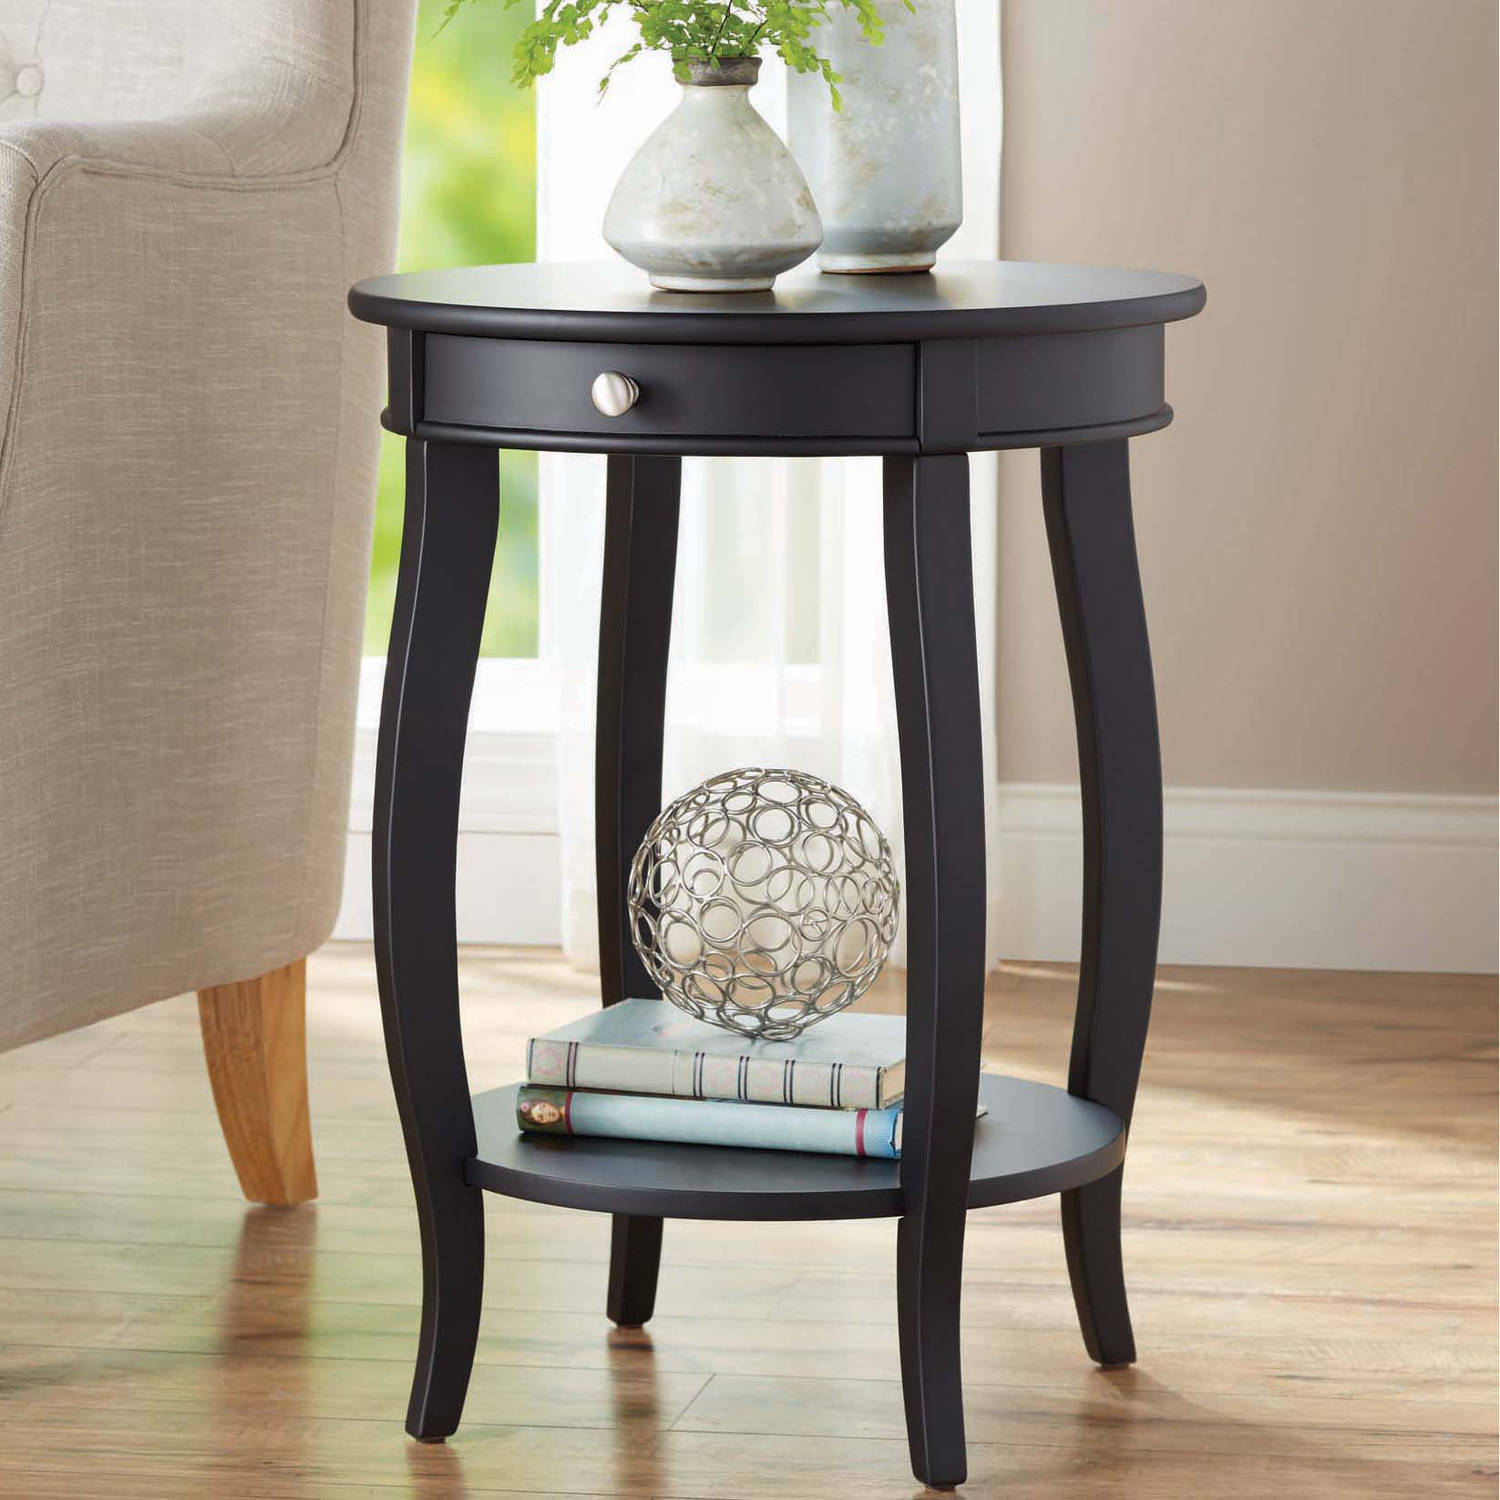 Cheap Accent Tables For Living Room